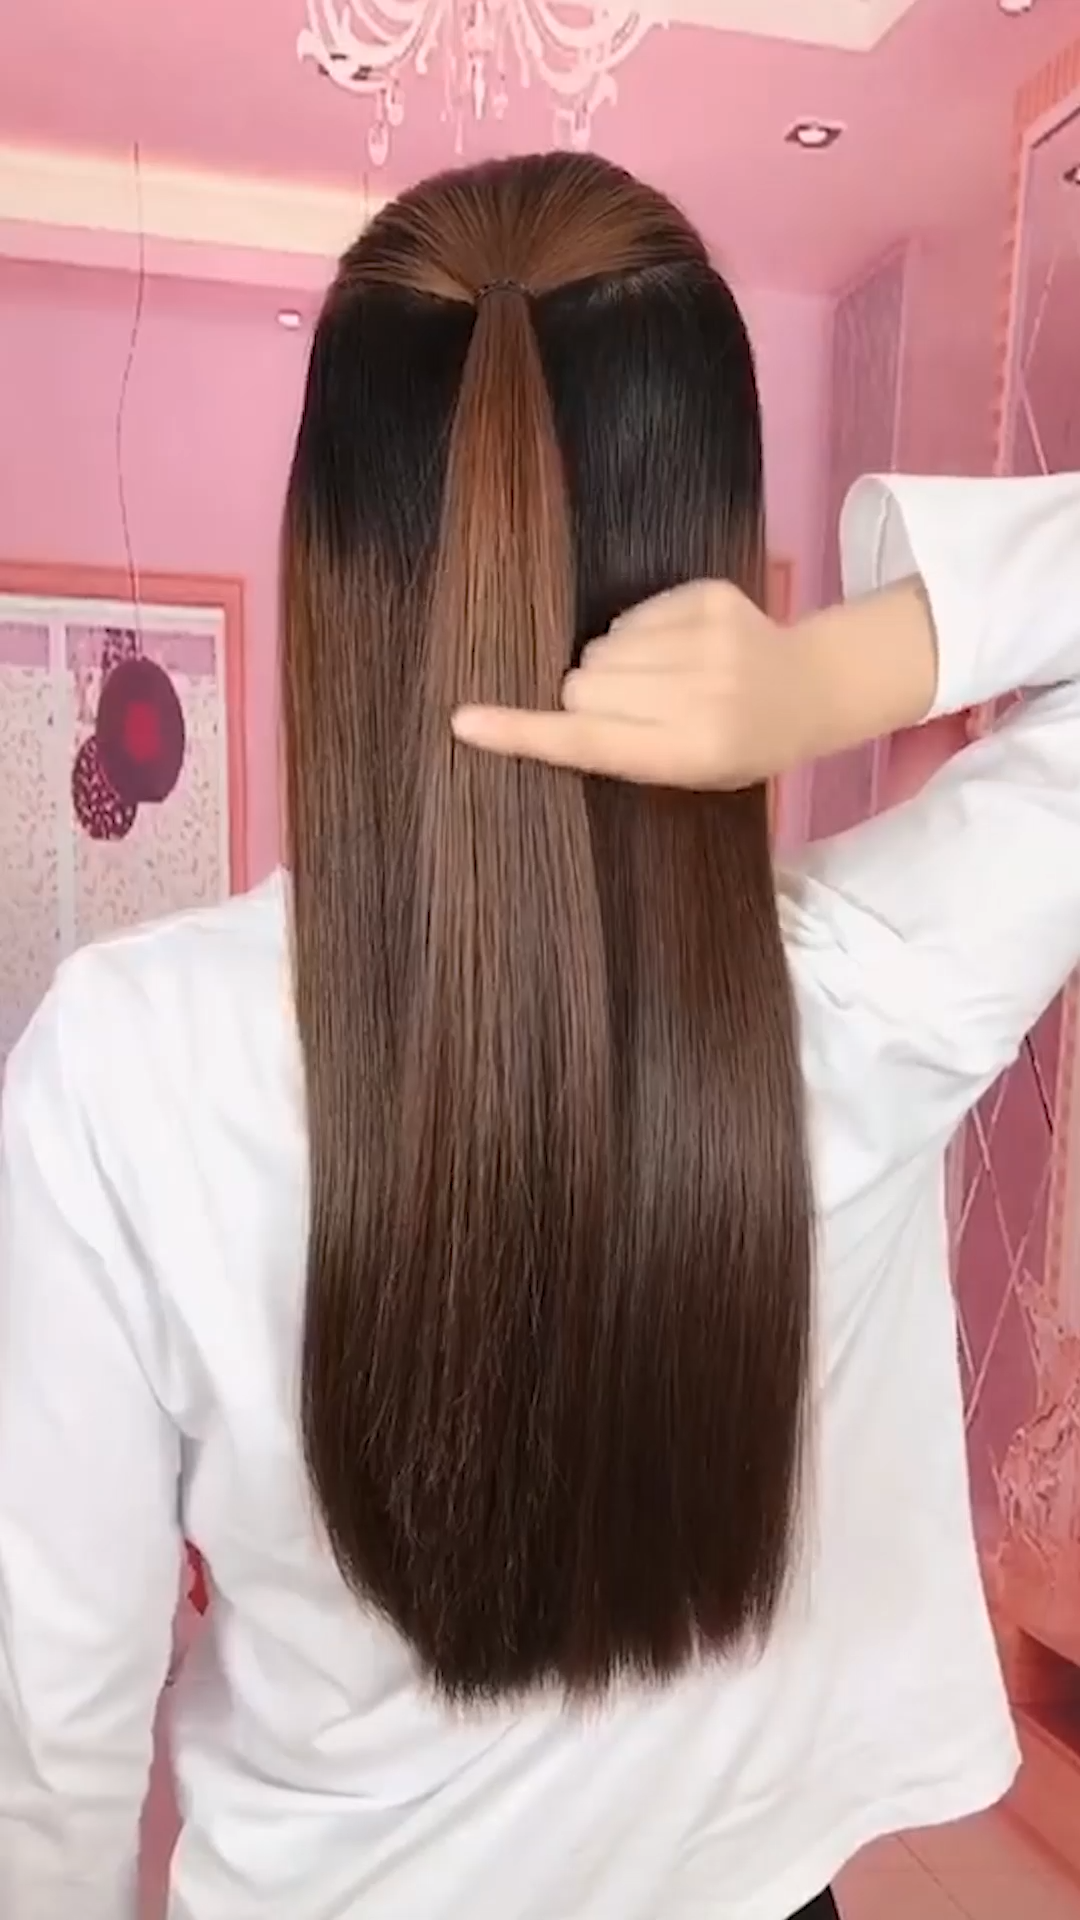 Hairstyle Tutorials For Long Hair New Hairstyle Videos 2019 Easy Quick Long Hairstyles In 2020 Easy Hairstyle Video Hair Videos Braided Hairstyles Easy